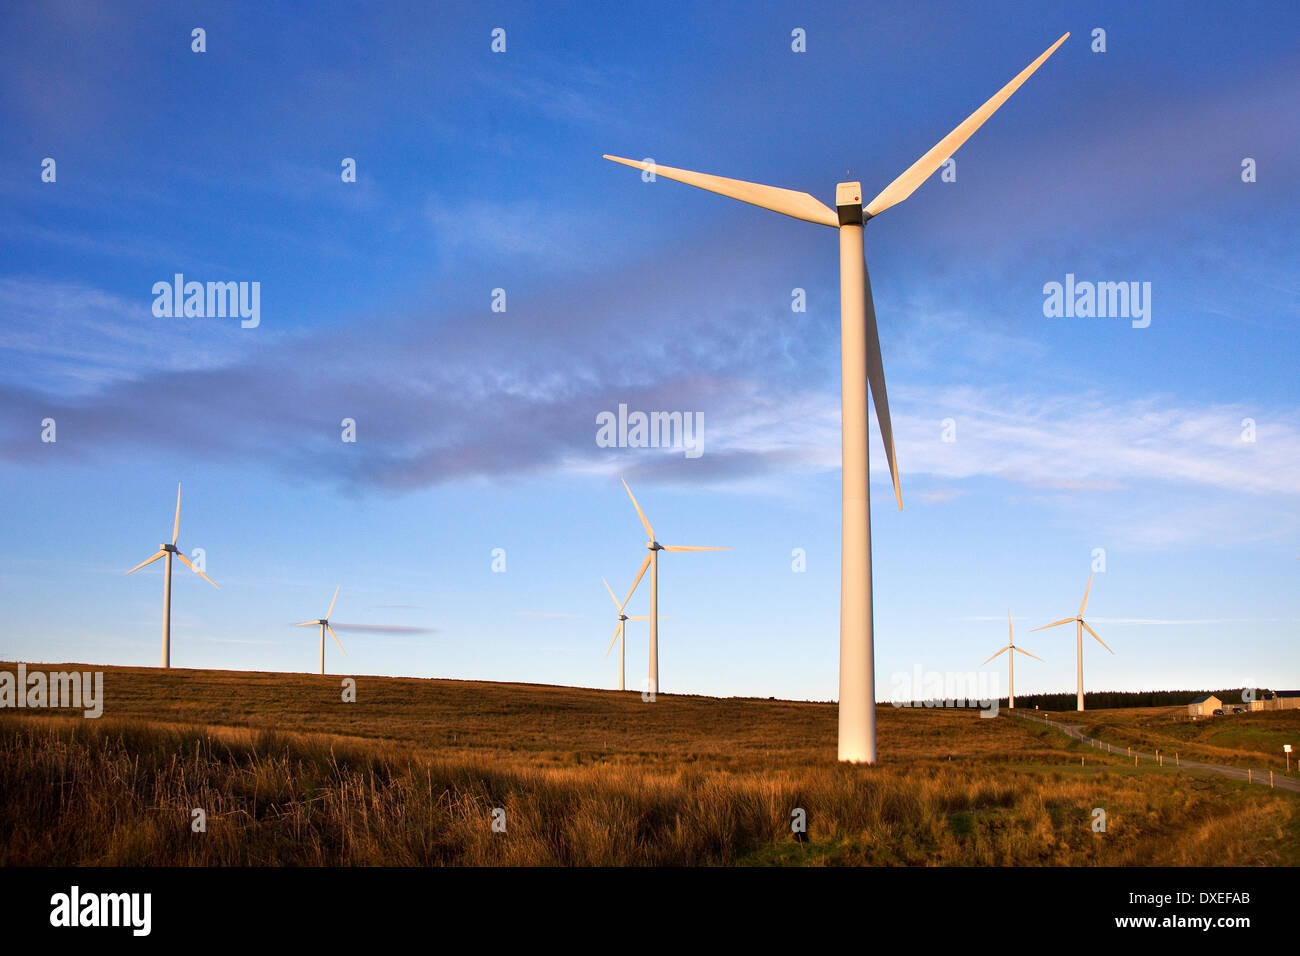 Wind turbines at tangy, Kintyre, Argyll - Stock Image